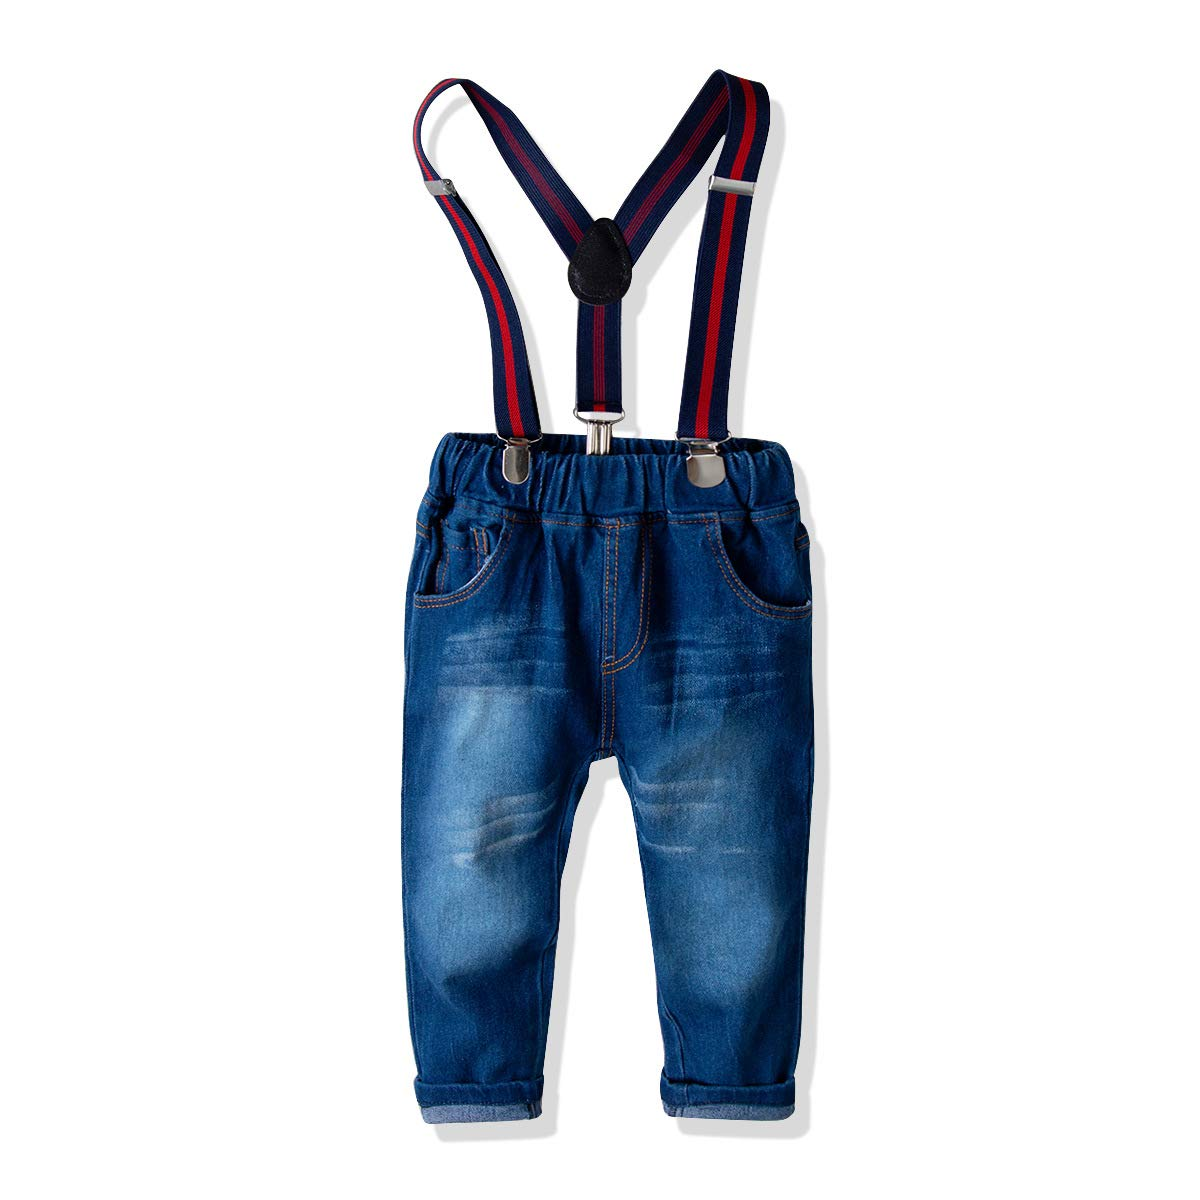 TotMore Little Boys Clothes Sets Bow Ties Shirts and Suspenders Pants